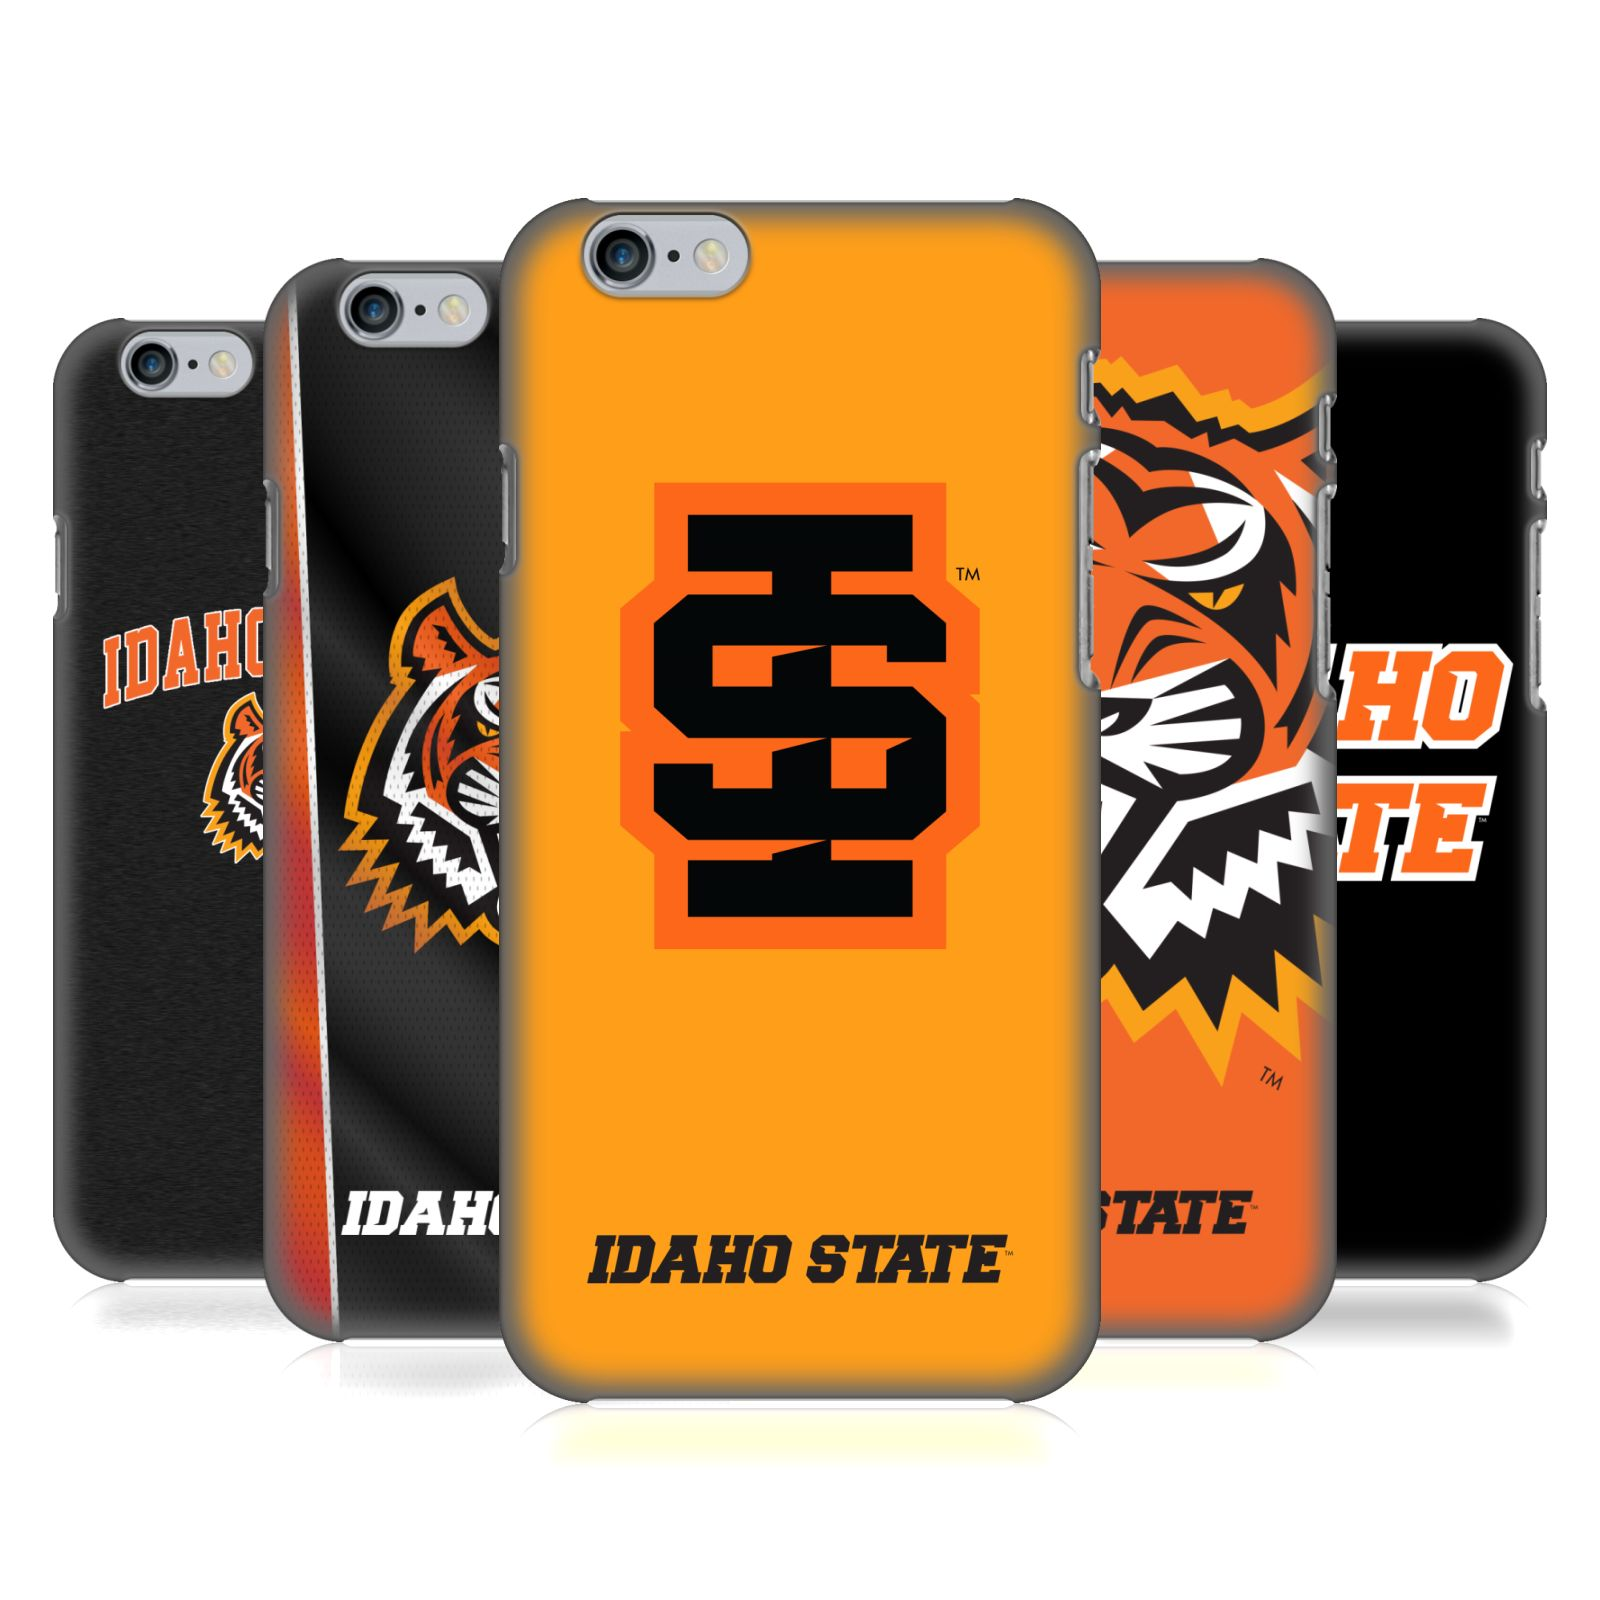 Idaho State University Phone and Tablet cases